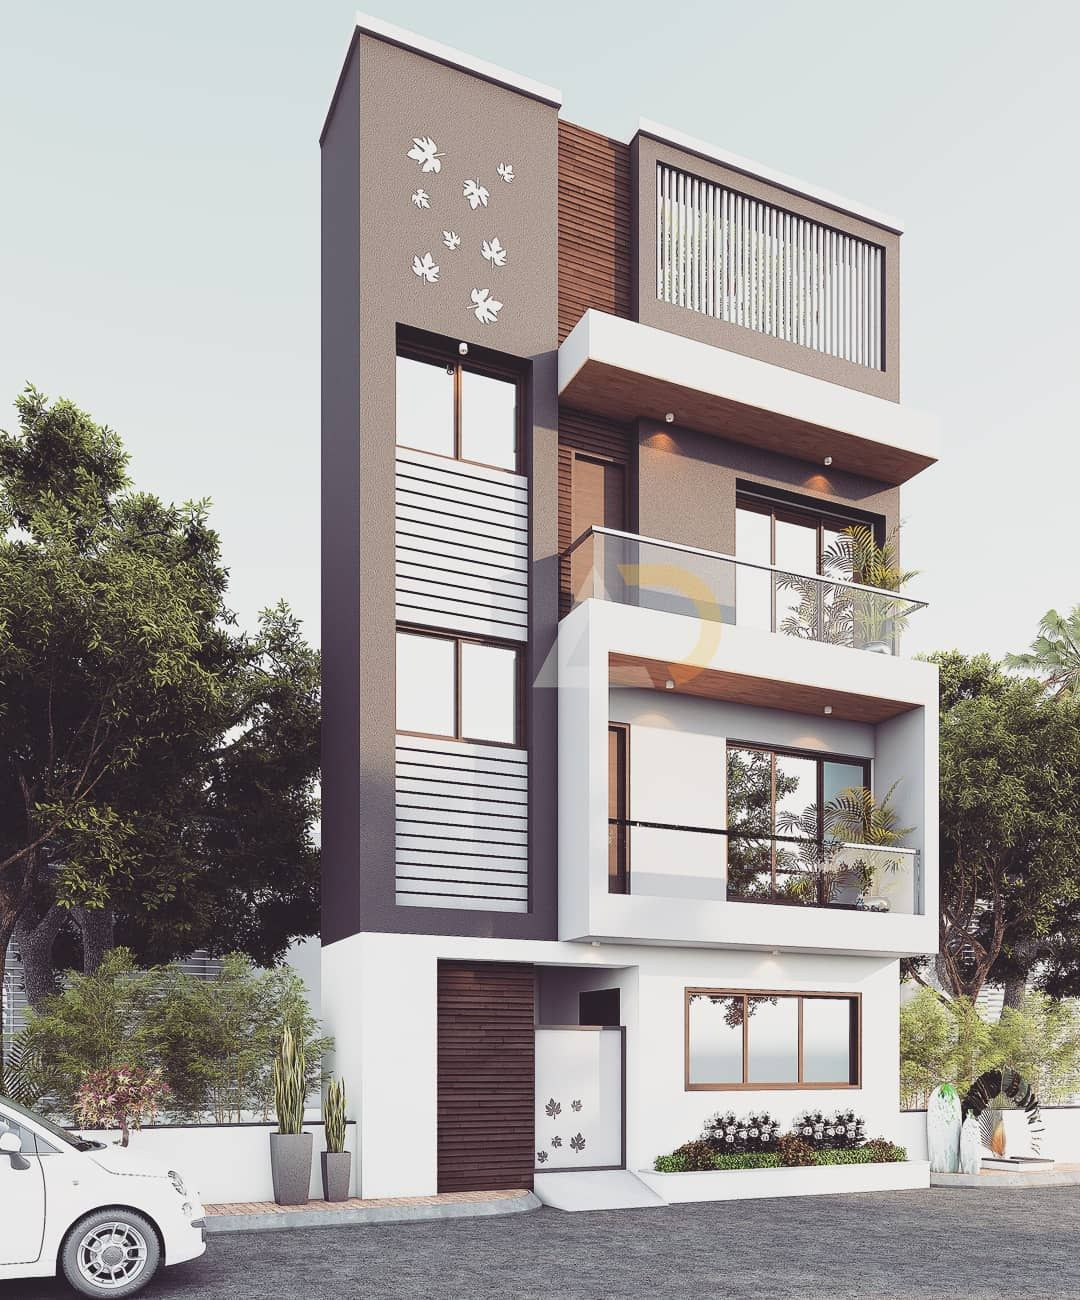 Facade Ideas Front Of House Awesome Image May Contain House Tree and Outdoor